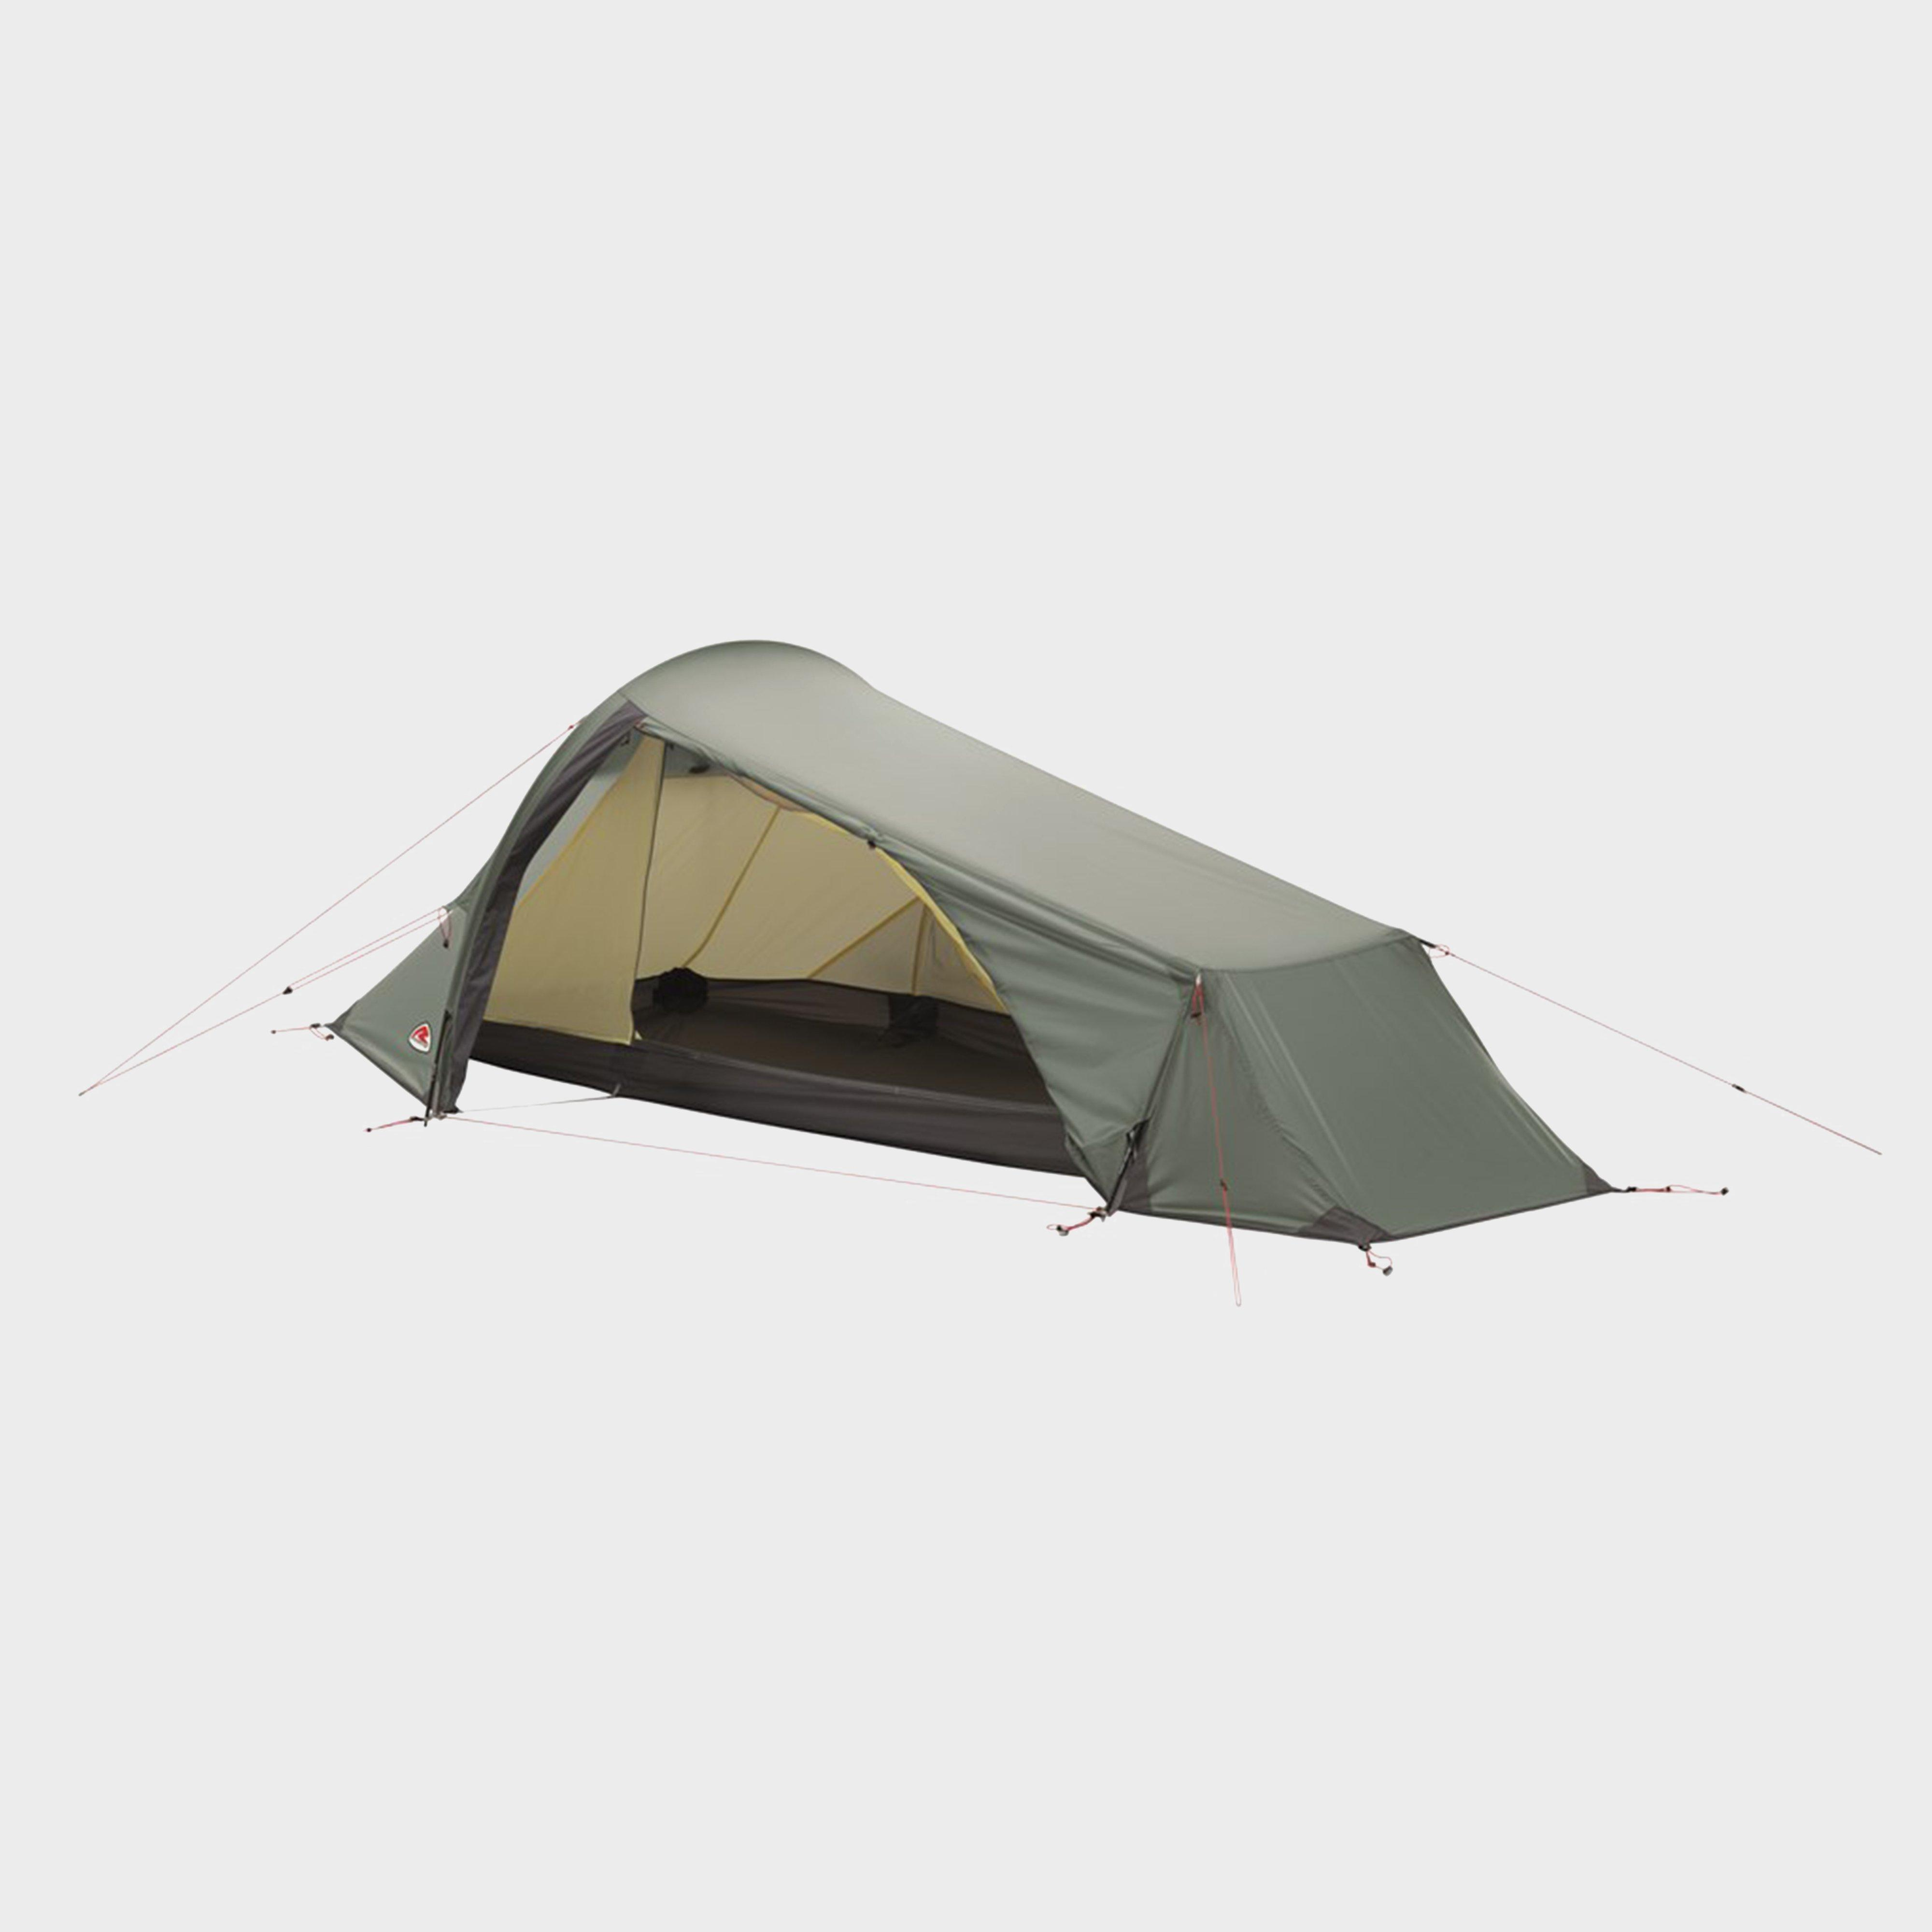 Robens Robens Goldcrest 1-Person Tent - Green, Green